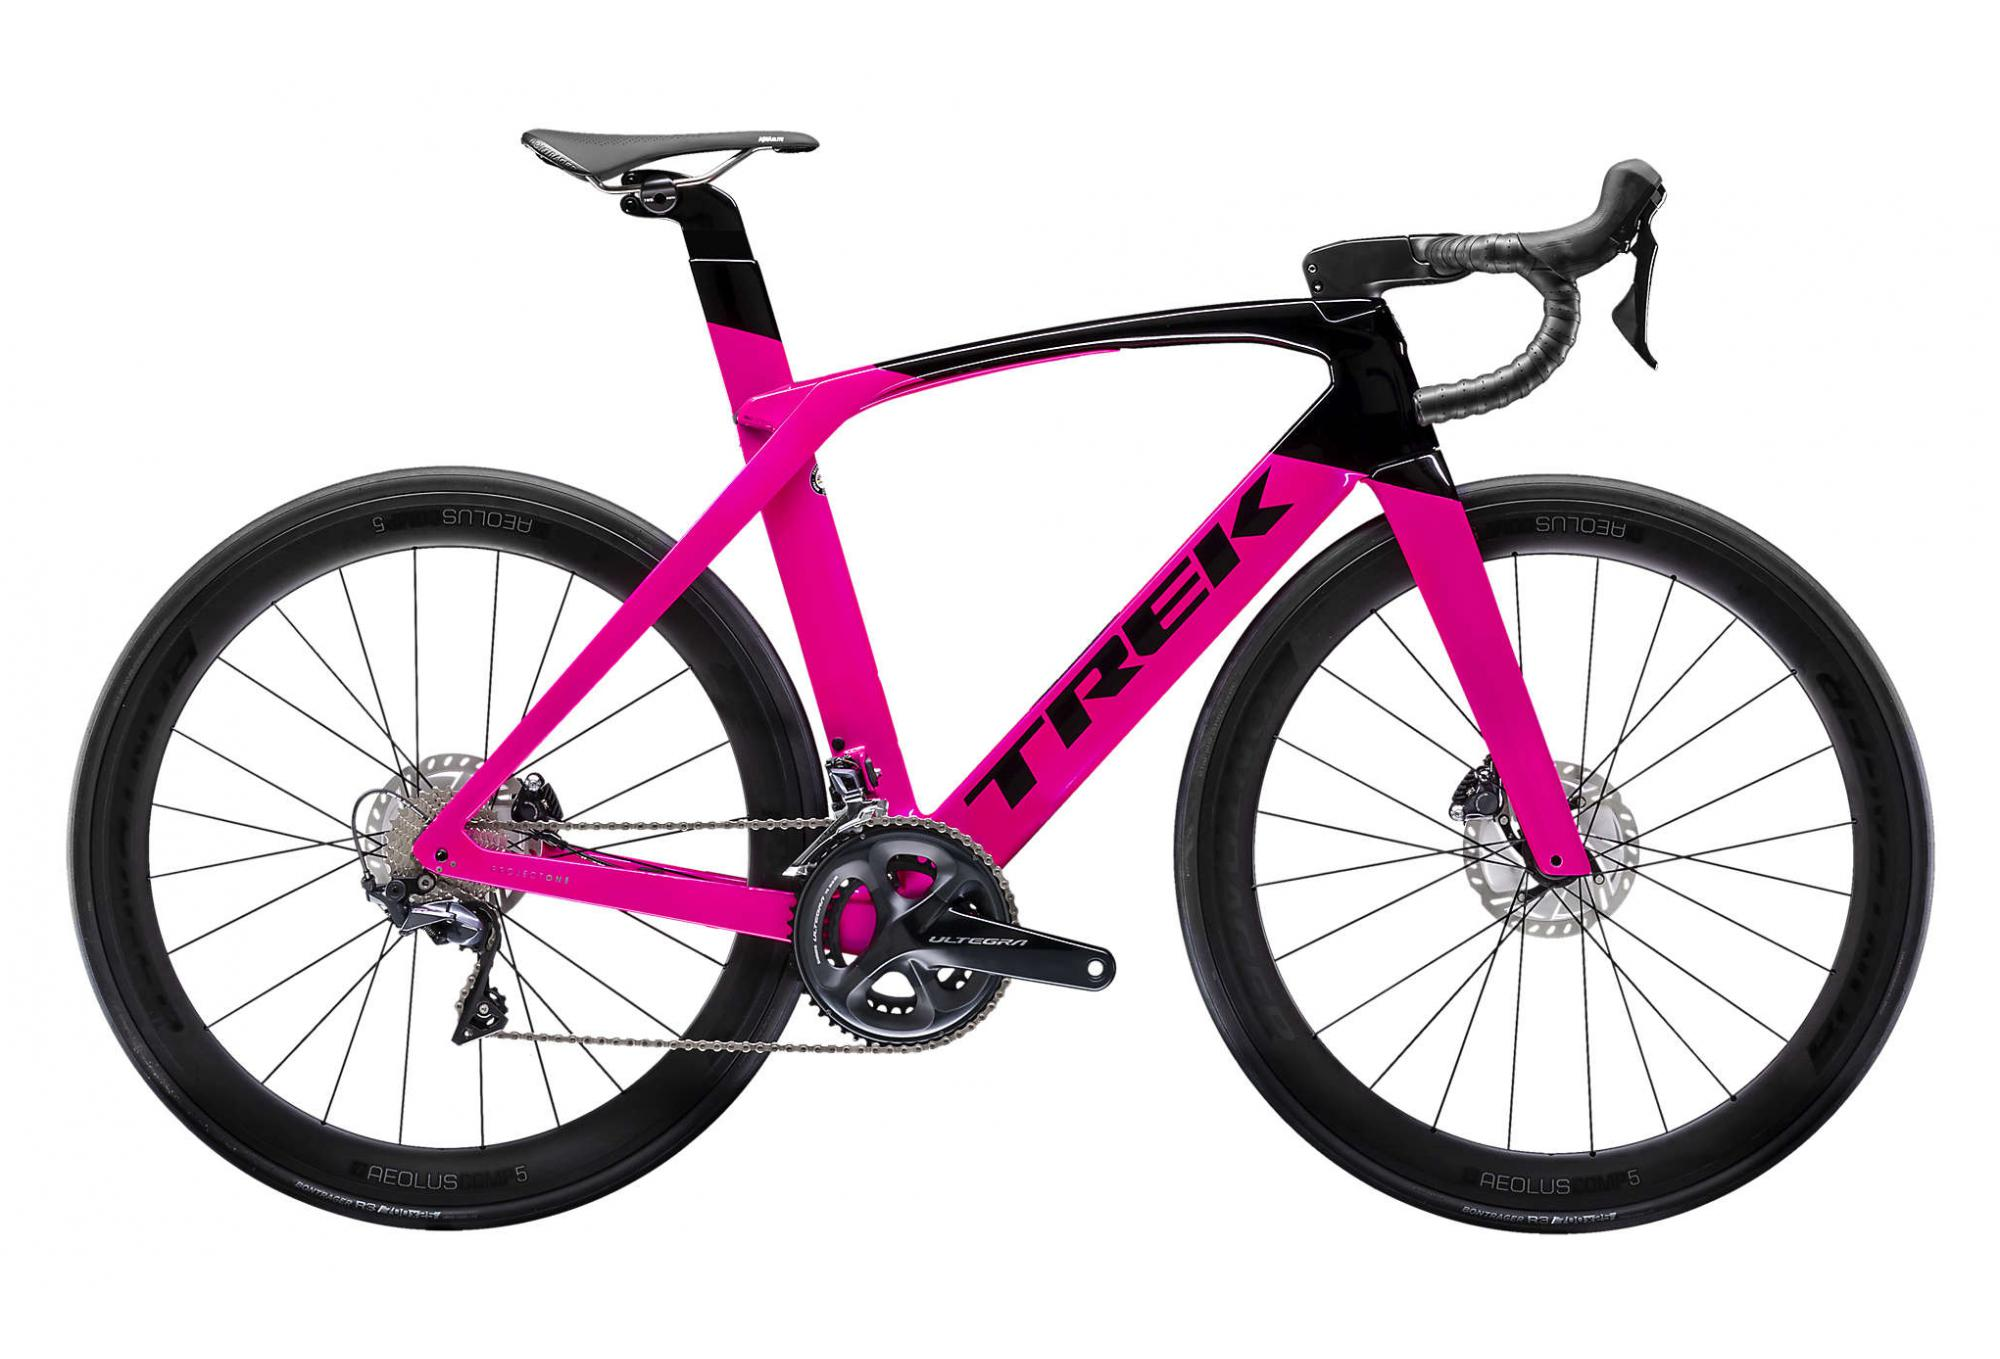 Trek Madone Slr 6 Women Road Bike 2019 Shimano Ultegra 11s